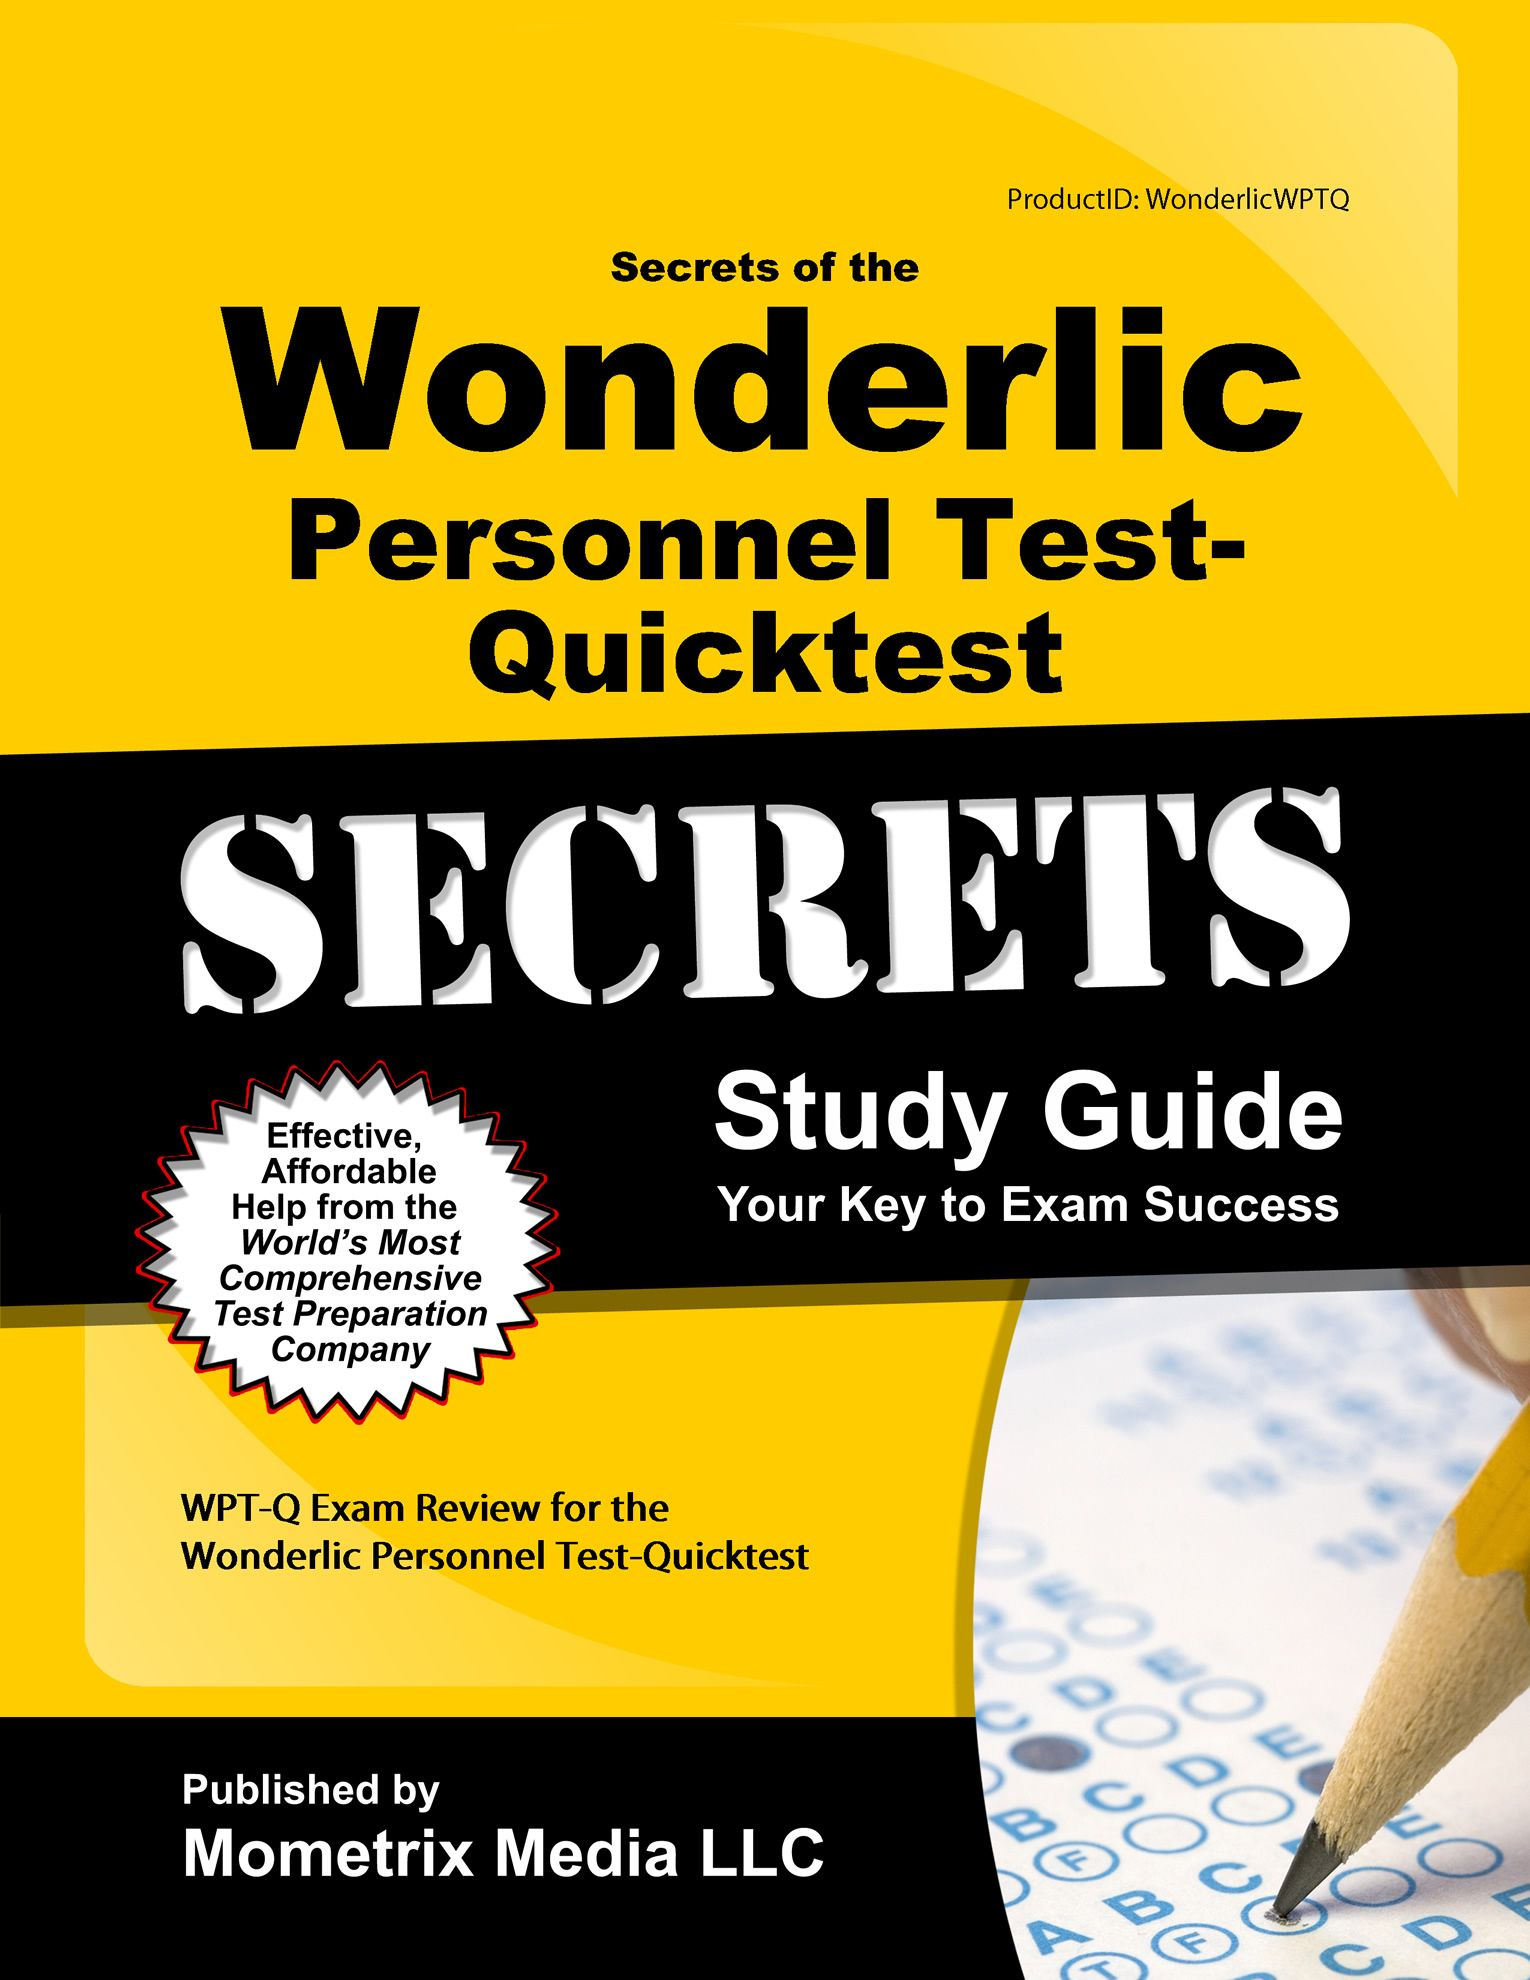 Wonderlic Personnel Test- Quicktest Study Guide http://mo-media.com/ wonderlic/ #wonderlic